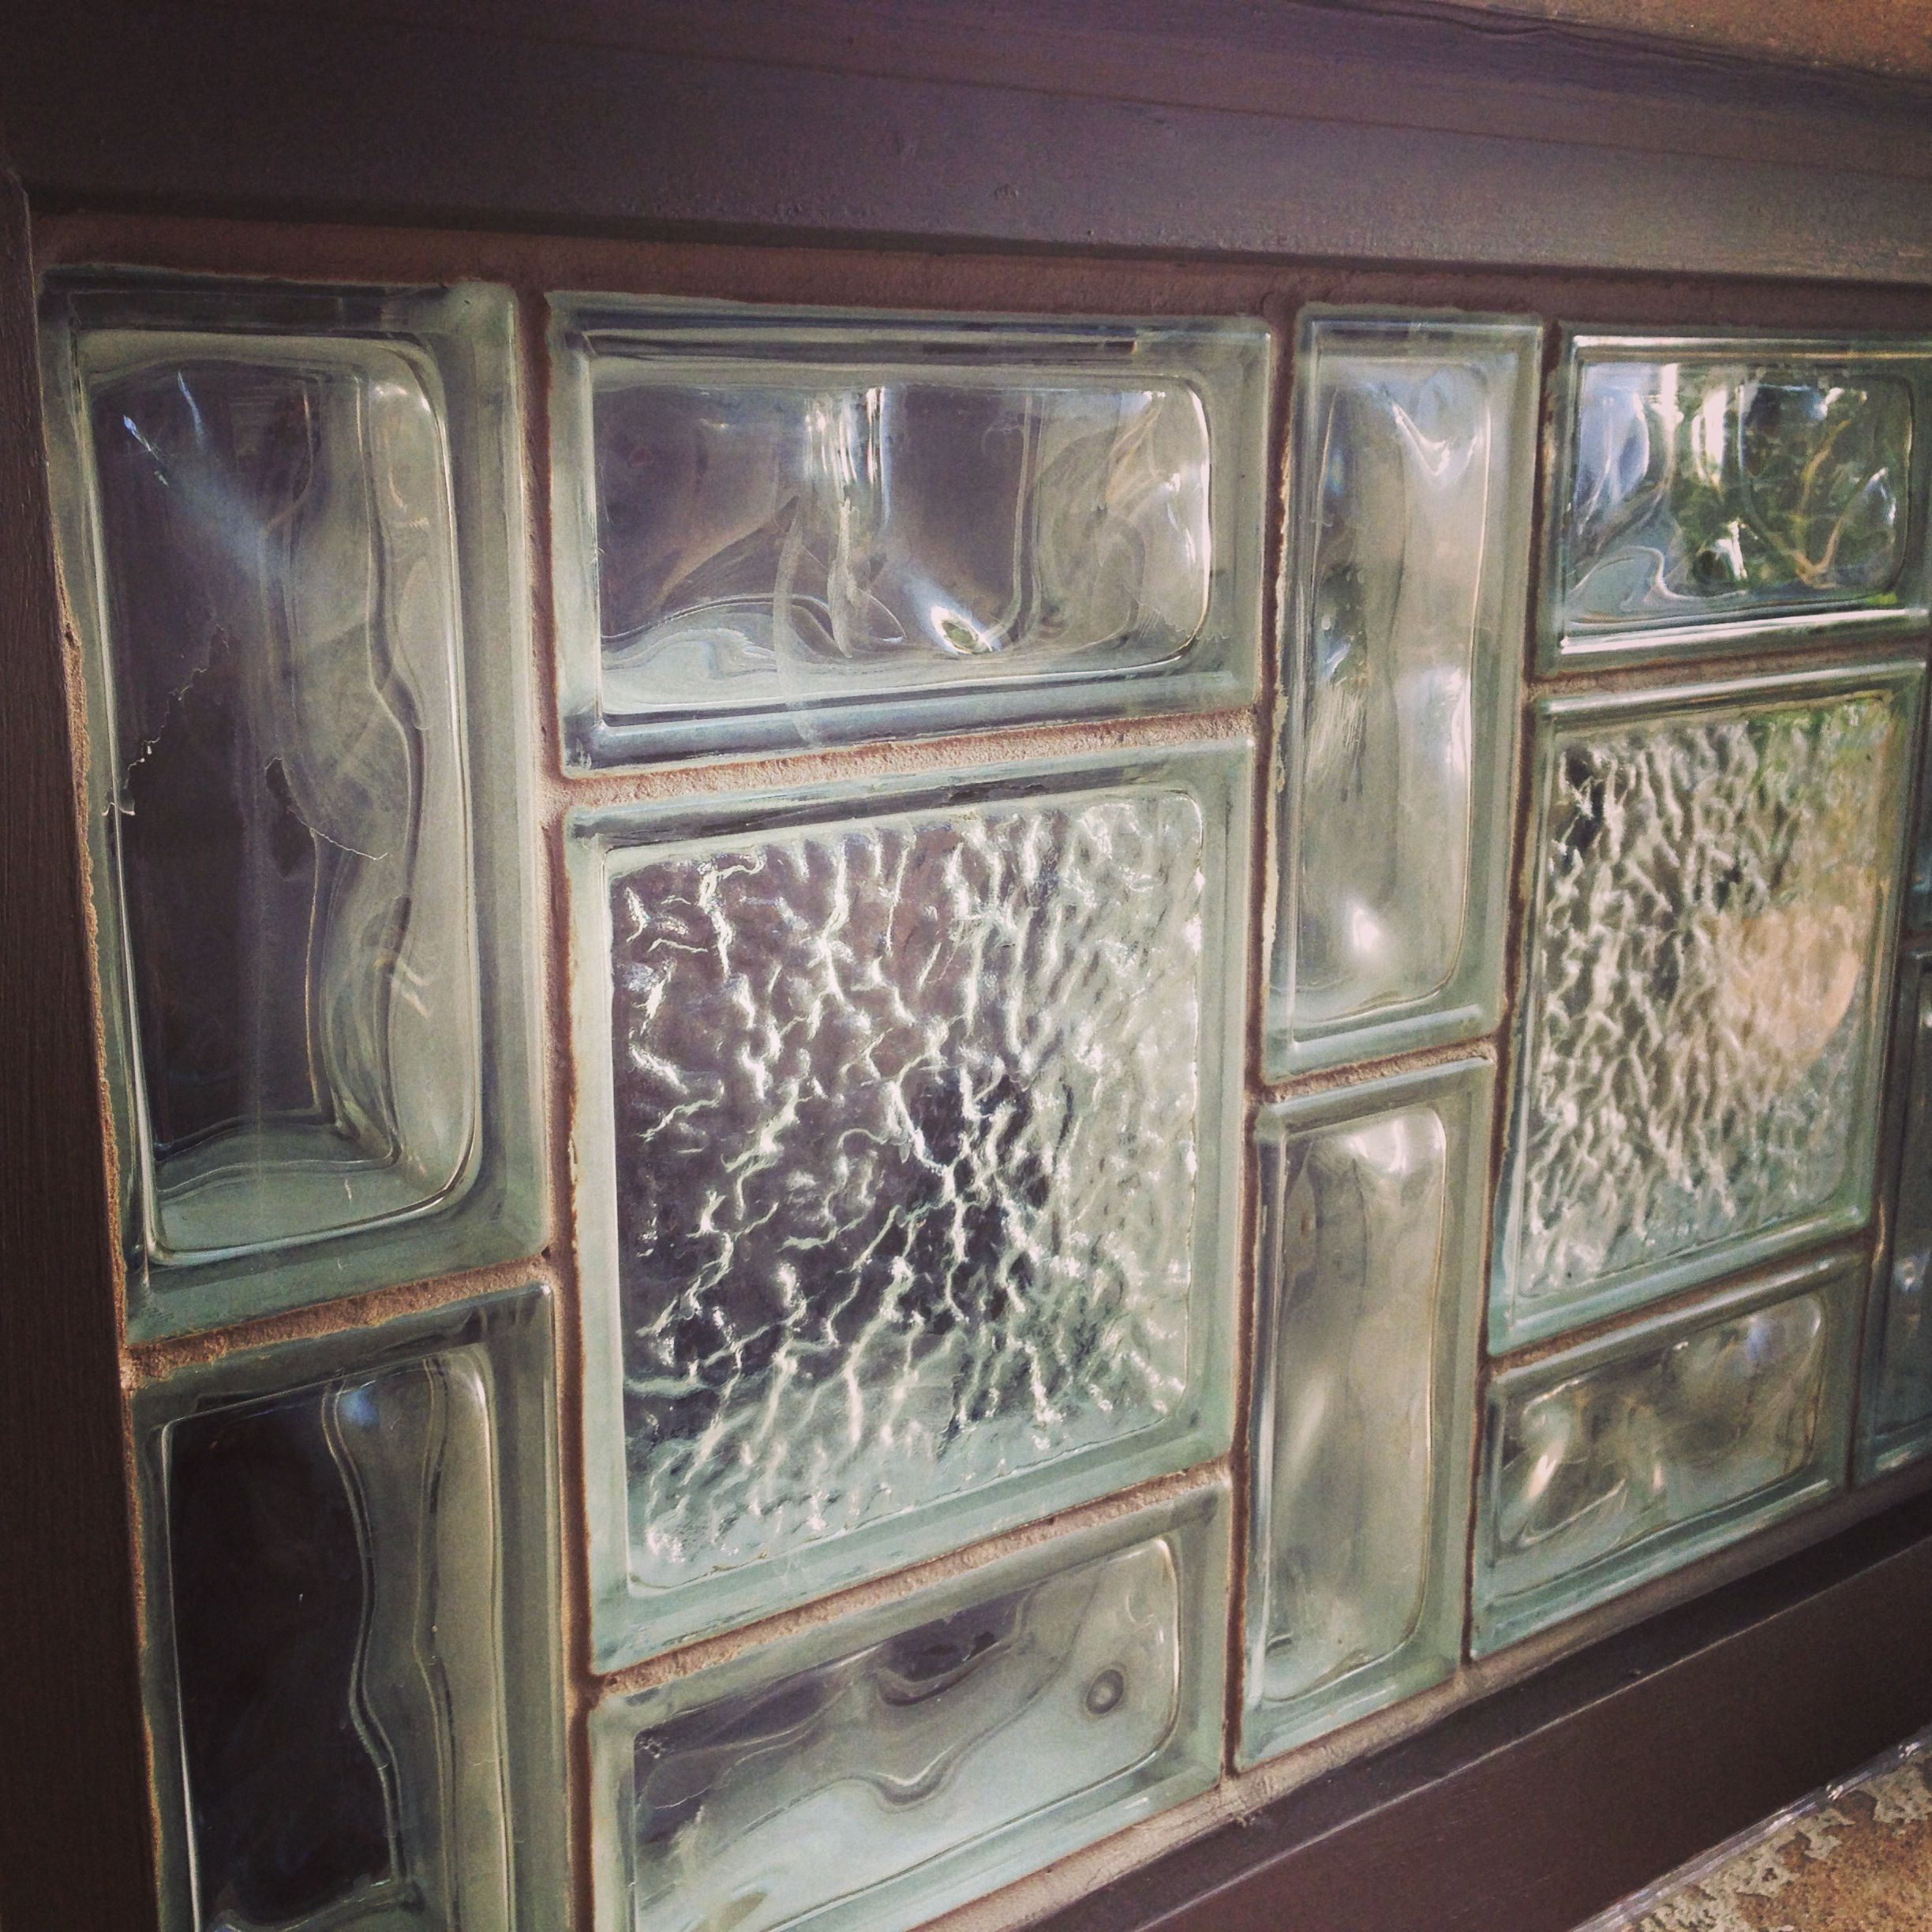 Glass Block Window With Sanded Caulk Gives This Window A